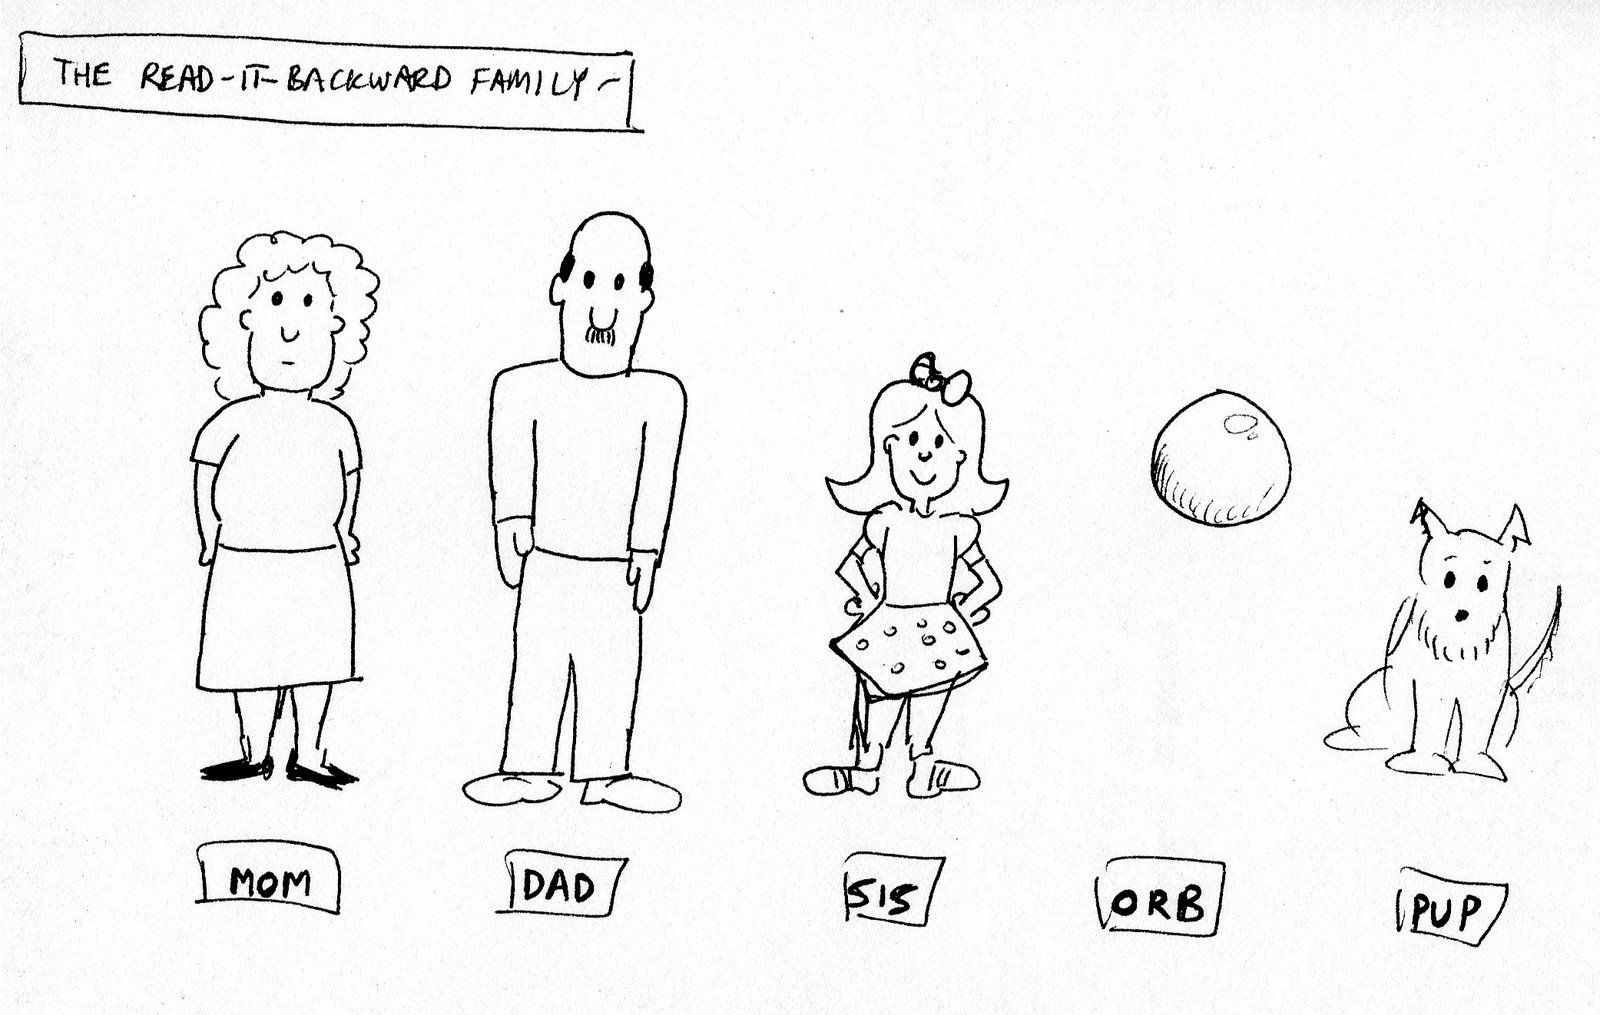 [read+backward+family]